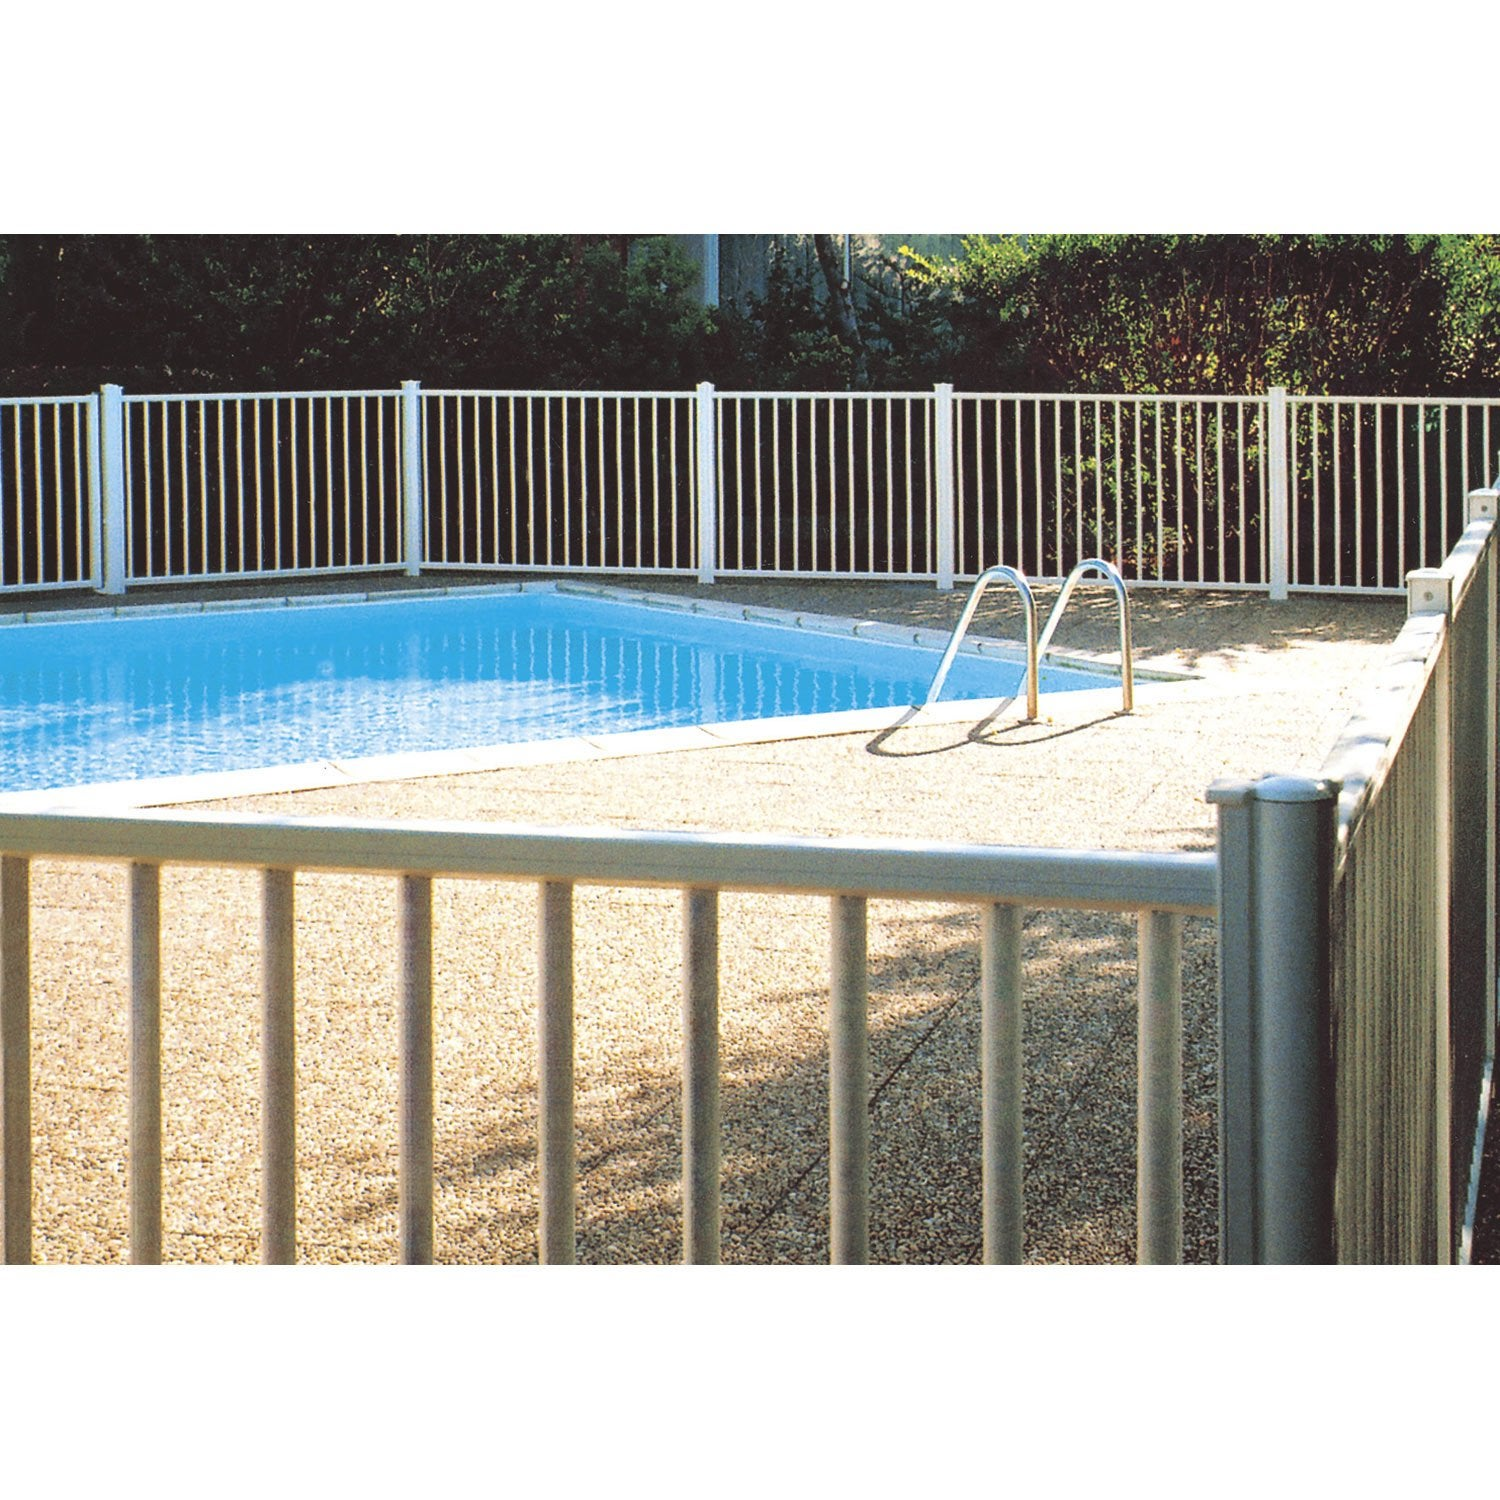 Barri re pour piscine aluminium issambres blanc 9010 h for Barriere maison